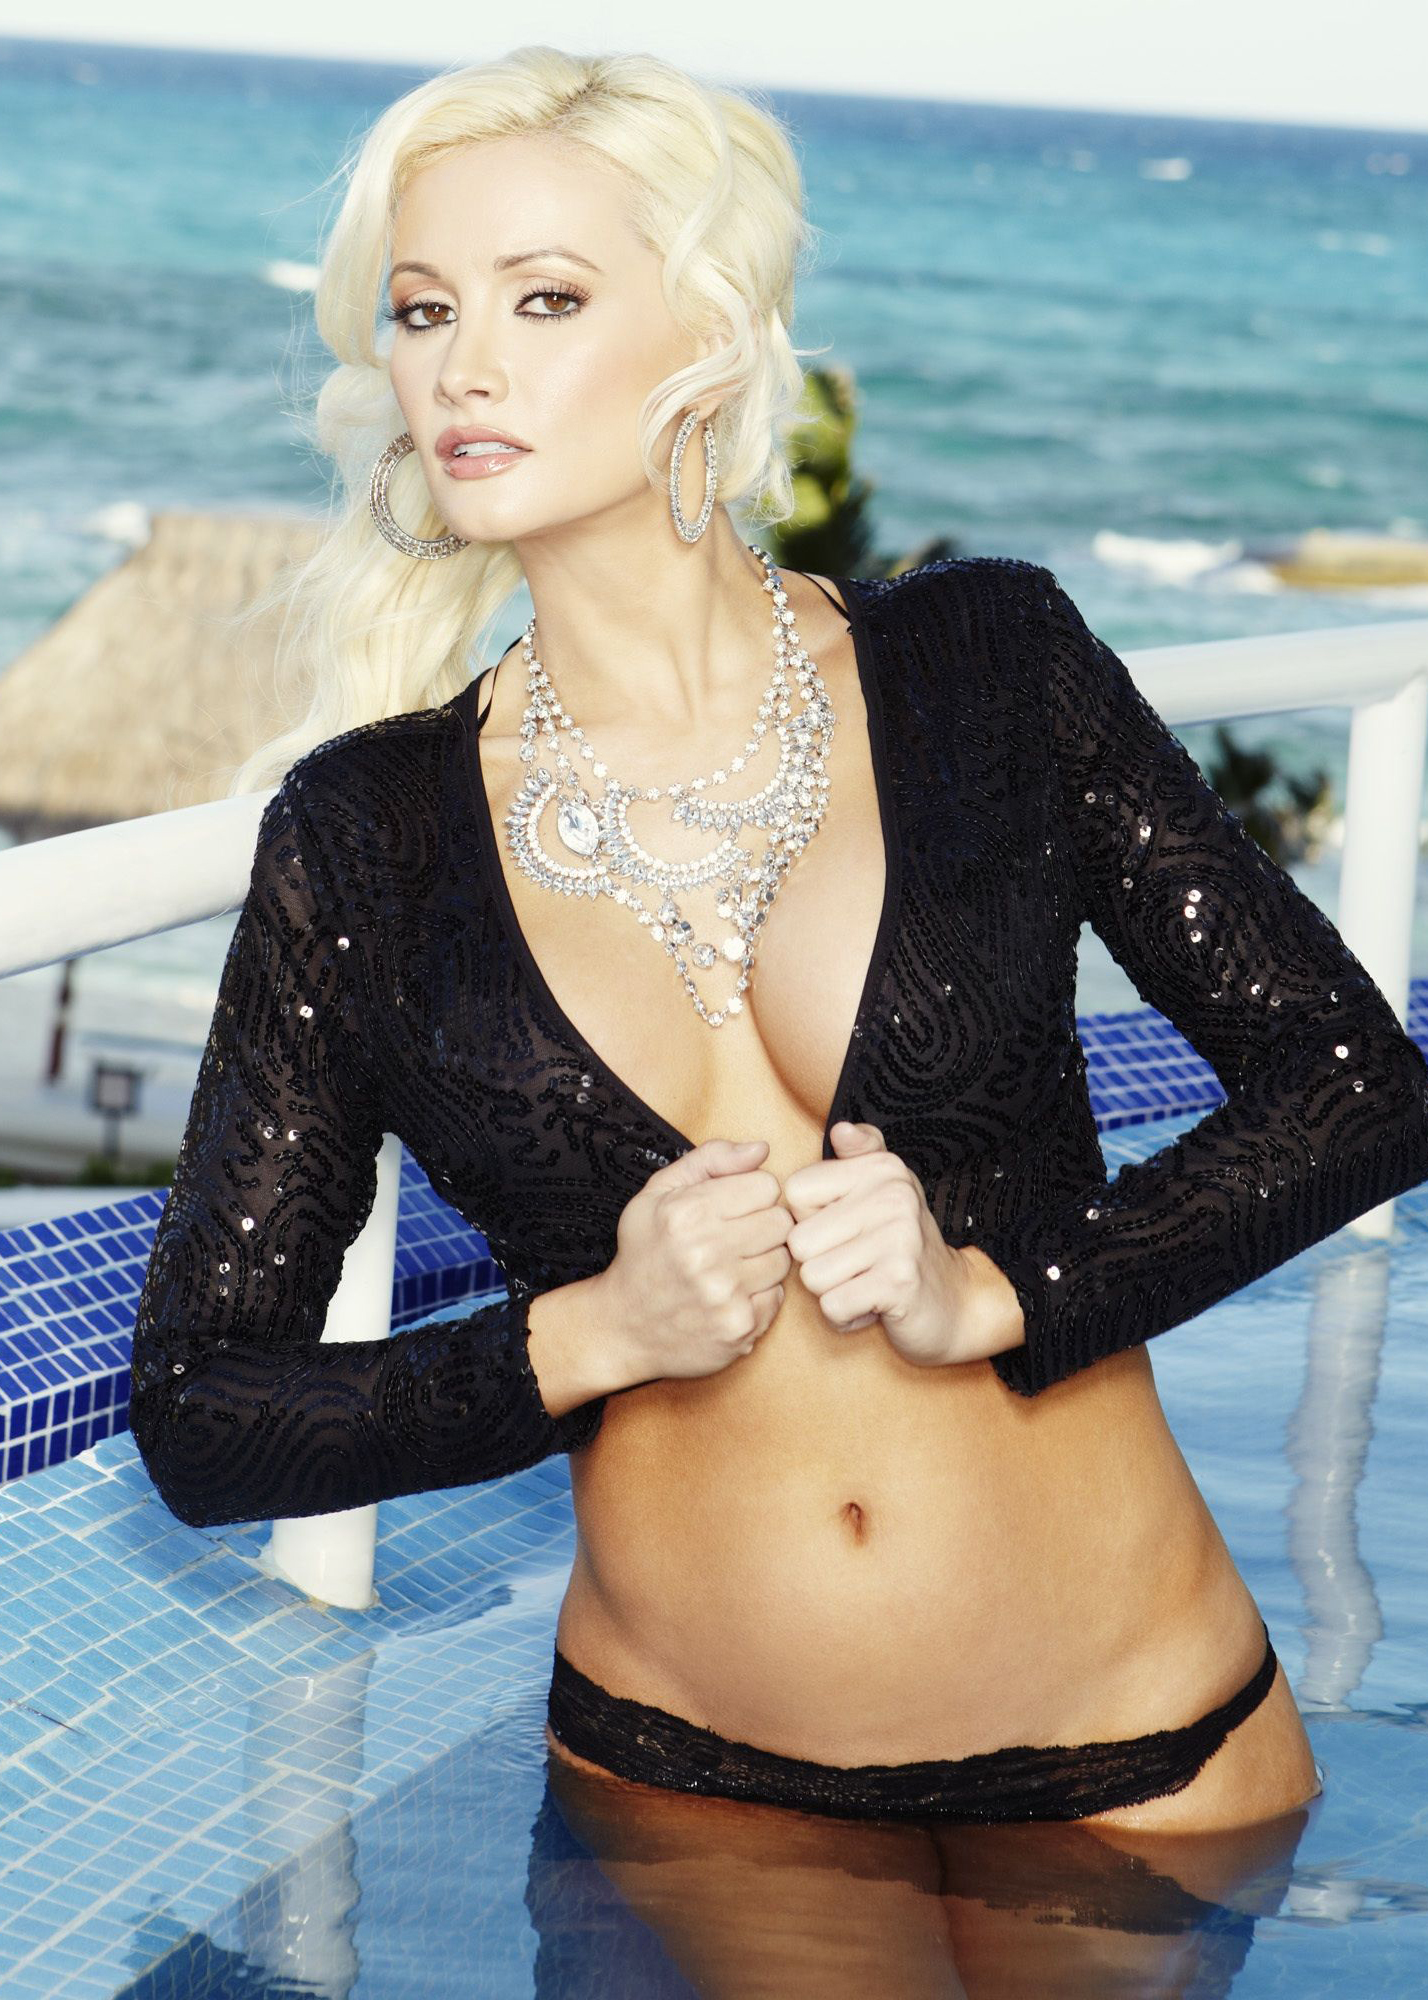 Holly madison nu Holly Madison Free Nude Pics Galleries More At Babepedia